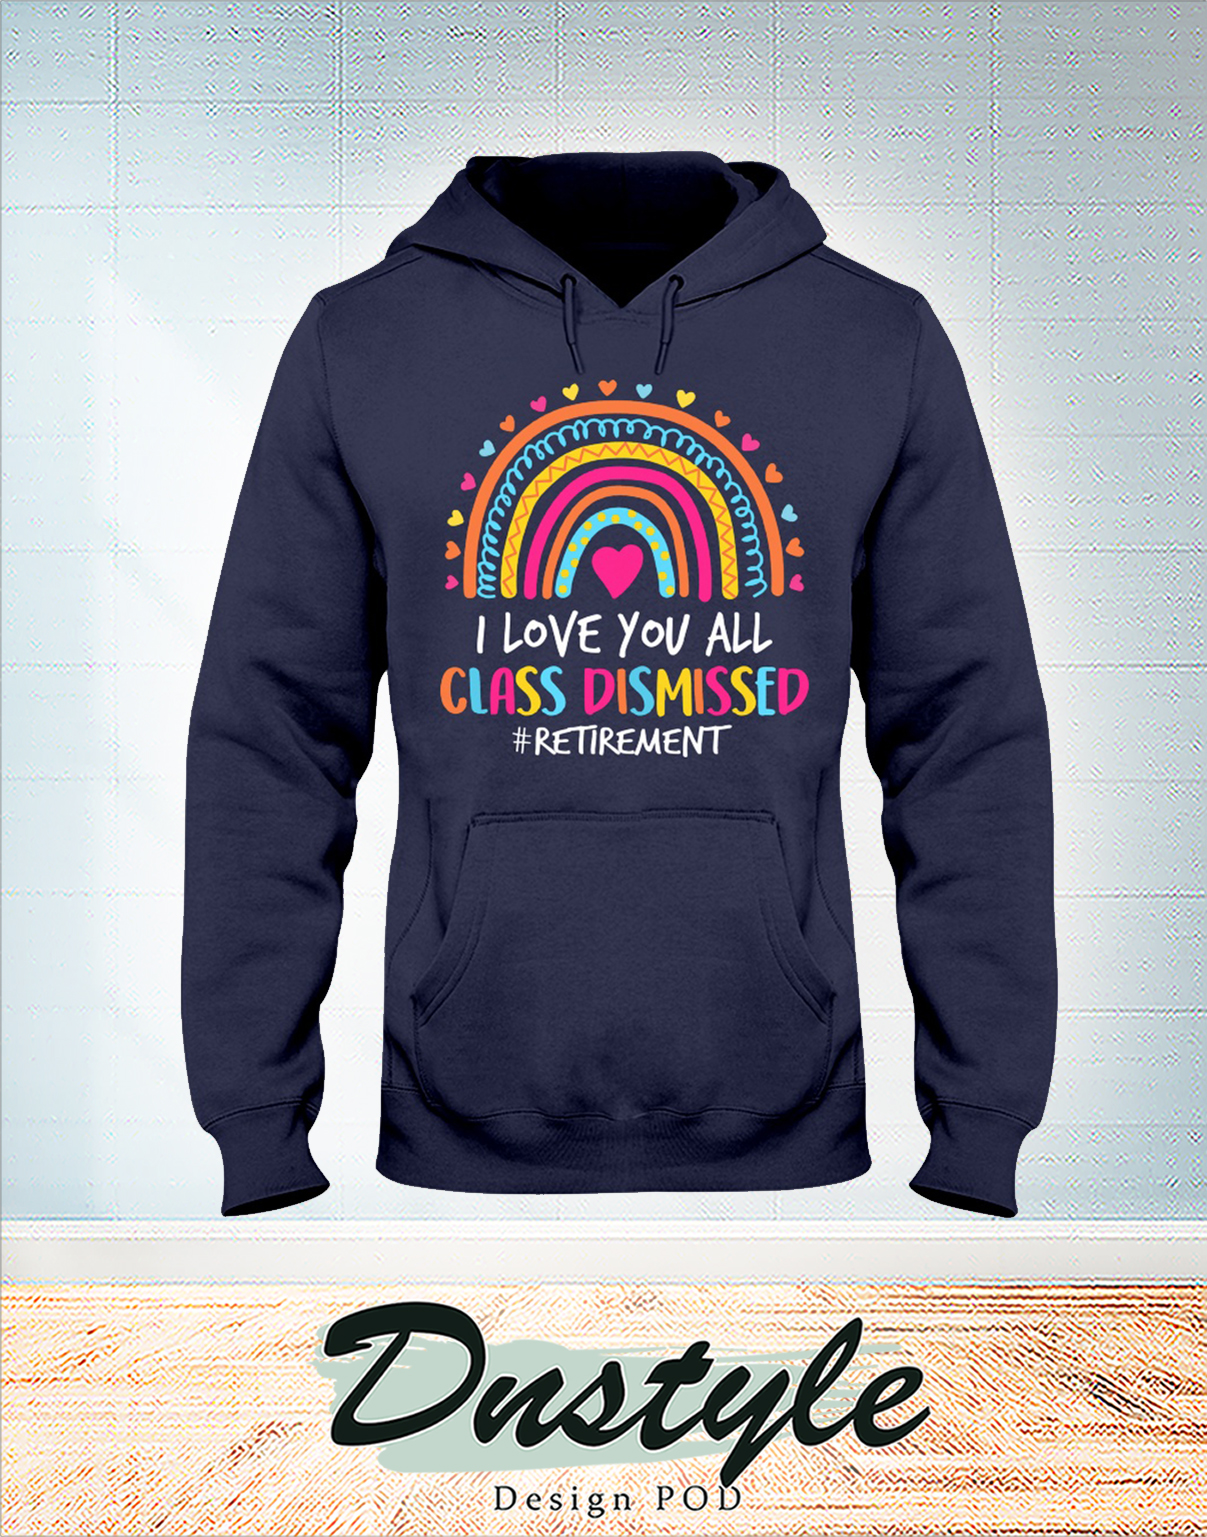 Rainbow I love you all class dismissed retirement hoodie